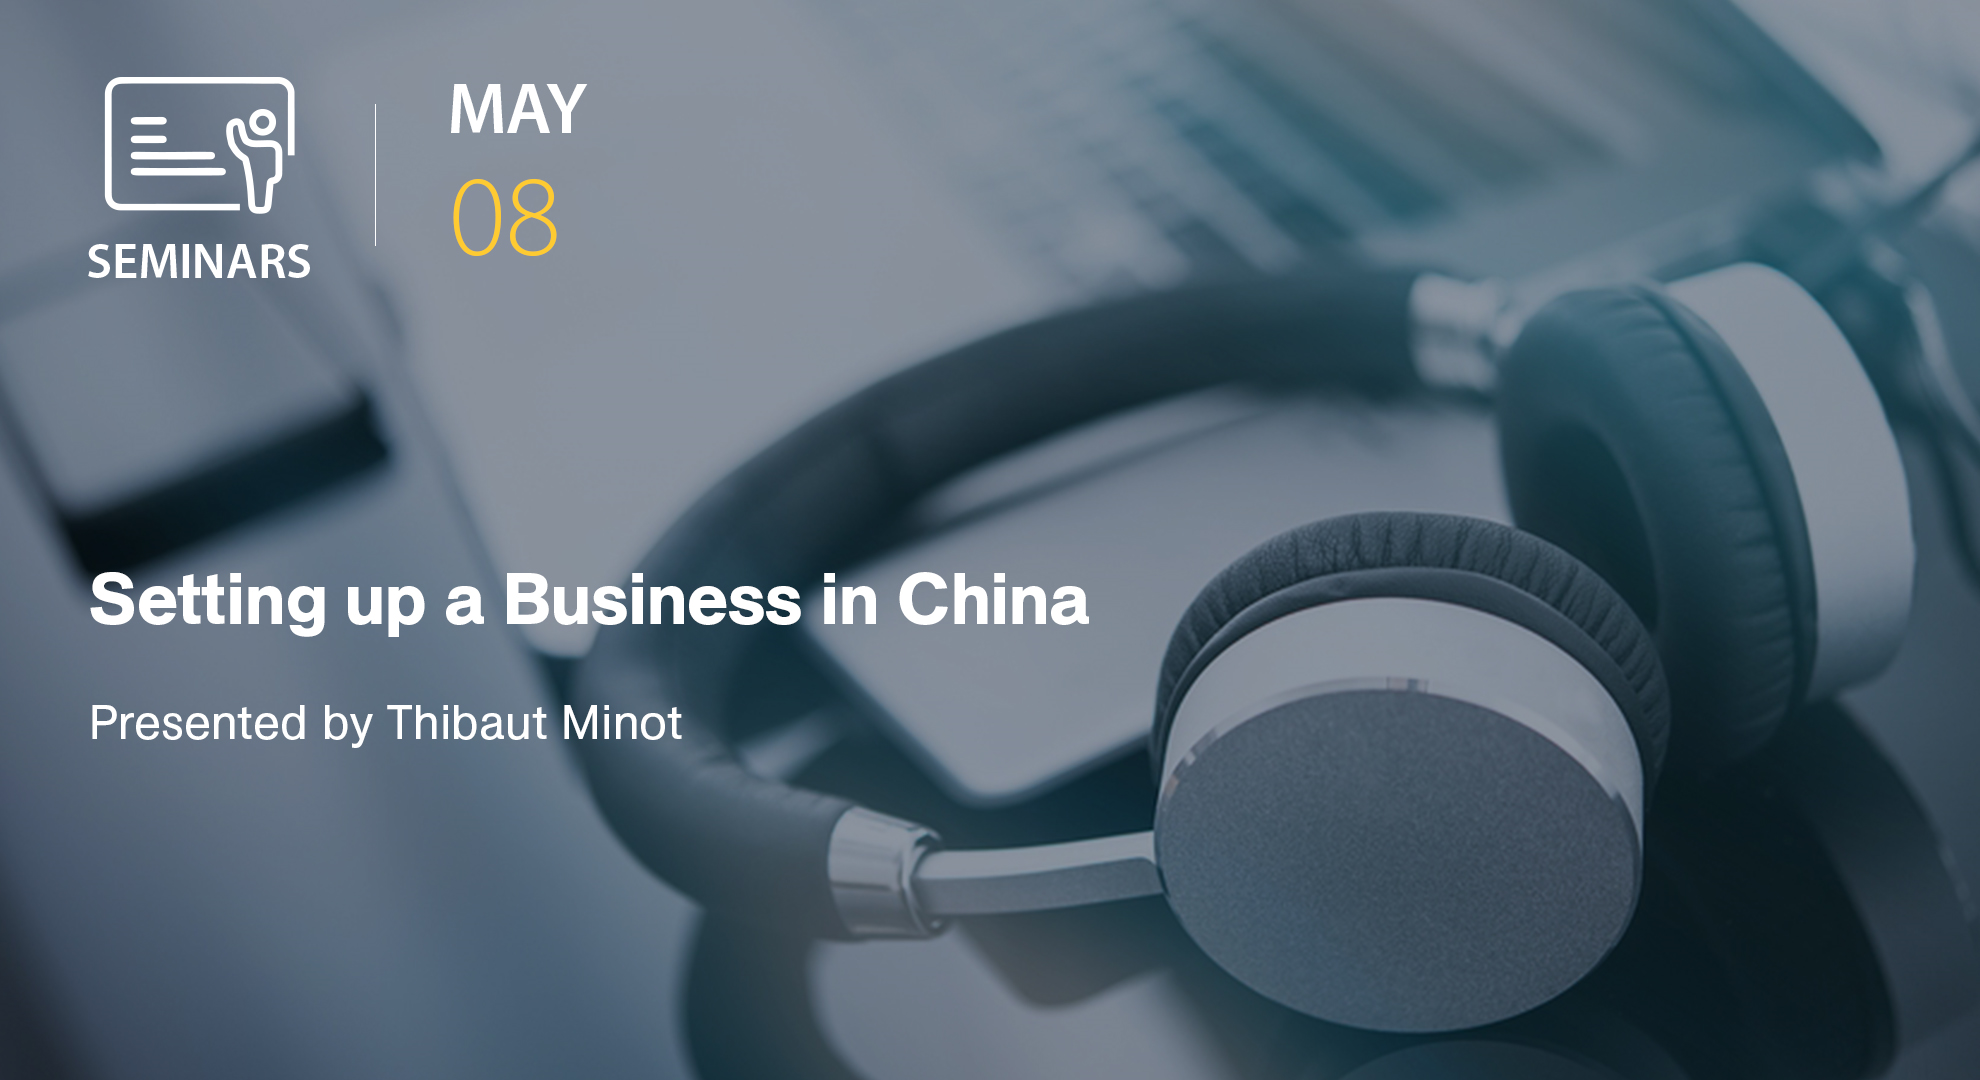 Setting up a Business in China by Thibaut Minot